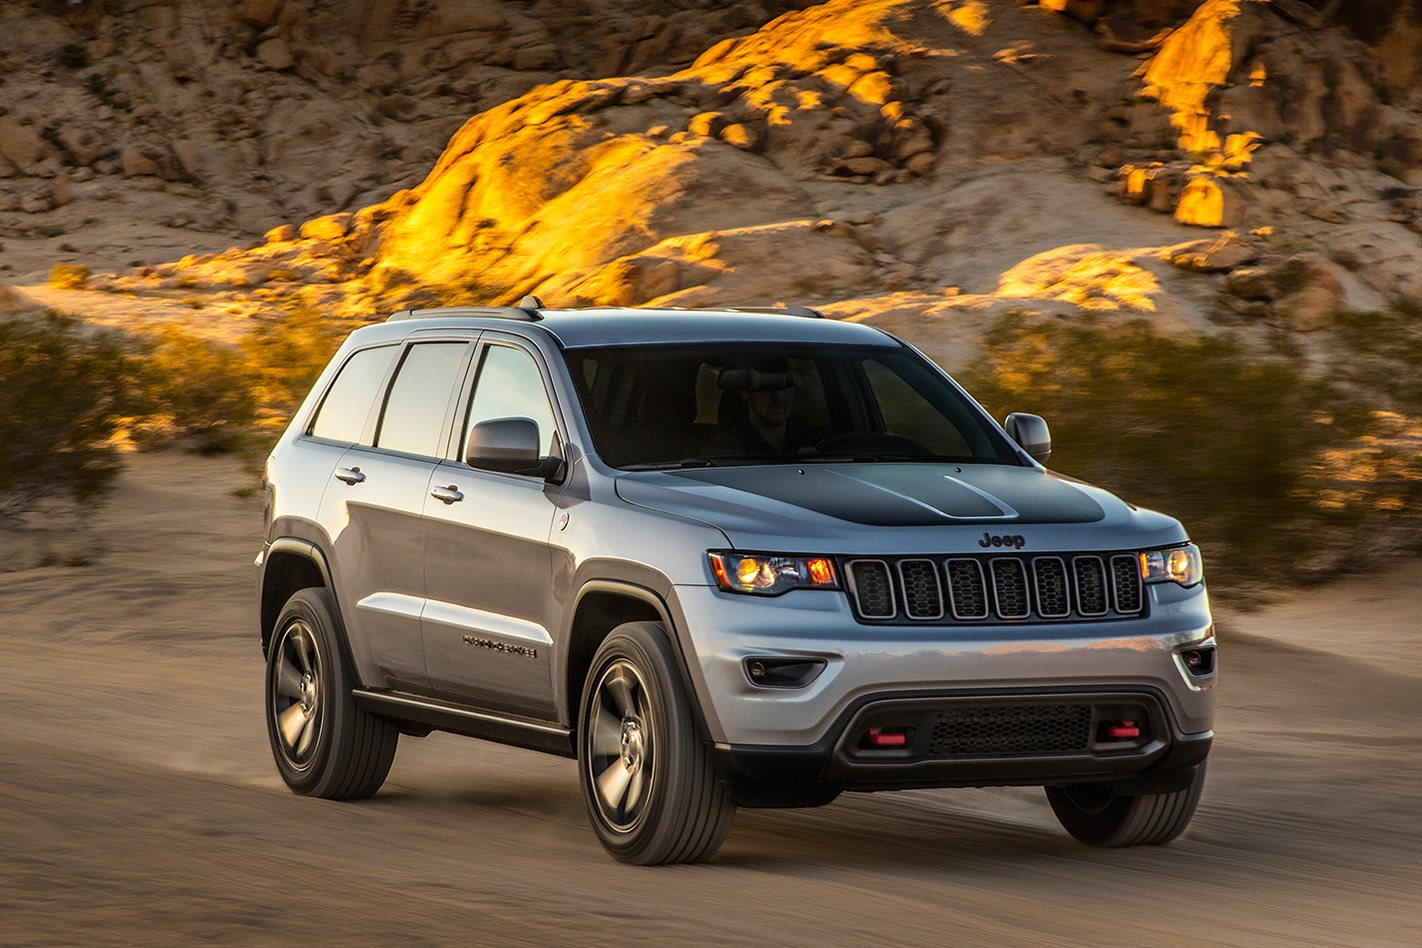 2017 jeep grand cherokee trailhawk review 4x4 australia. Black Bedroom Furniture Sets. Home Design Ideas